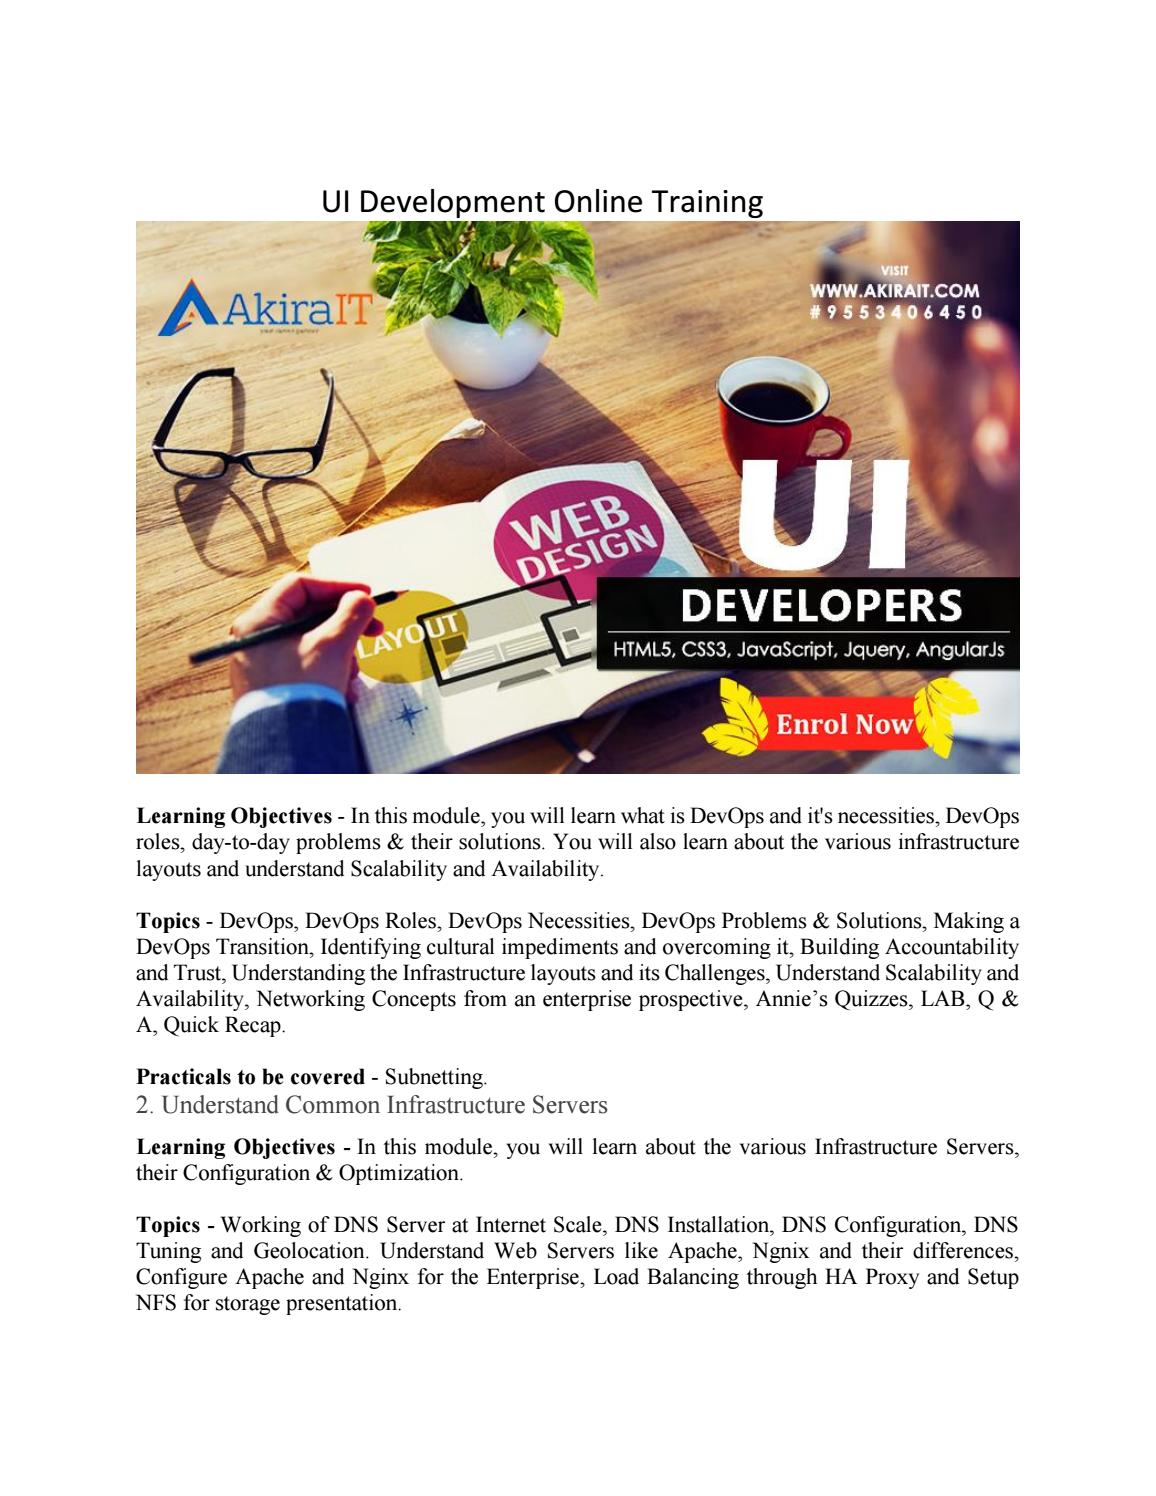 Ui development online training by akirait4 - issuu